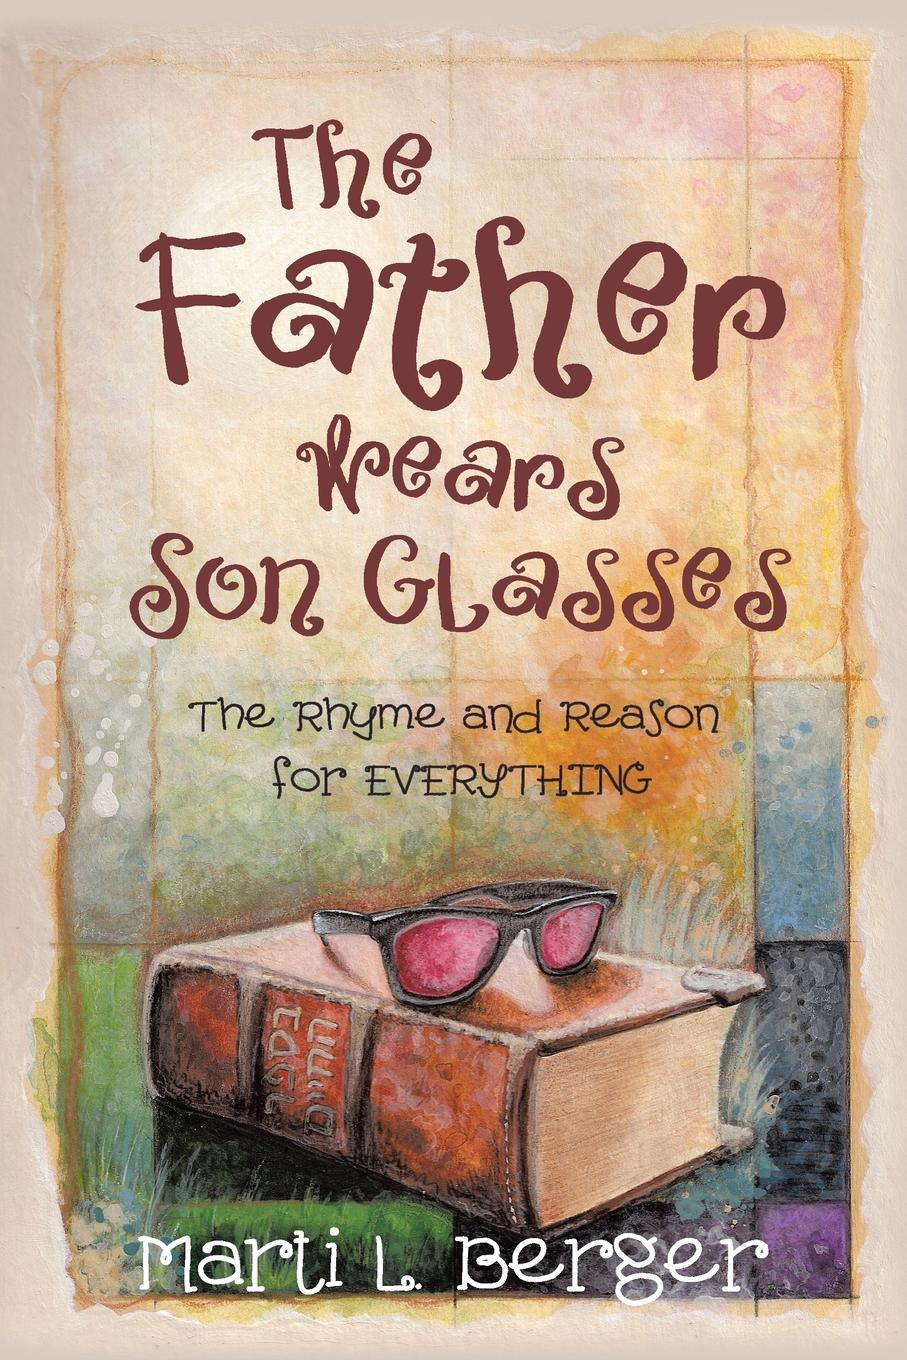 Marti L. Berger The Father Wears Son Glasses. The Rhyme and Reason for EVERYTHING marti l berger the father wears son glasses the rhyme and reason for everything